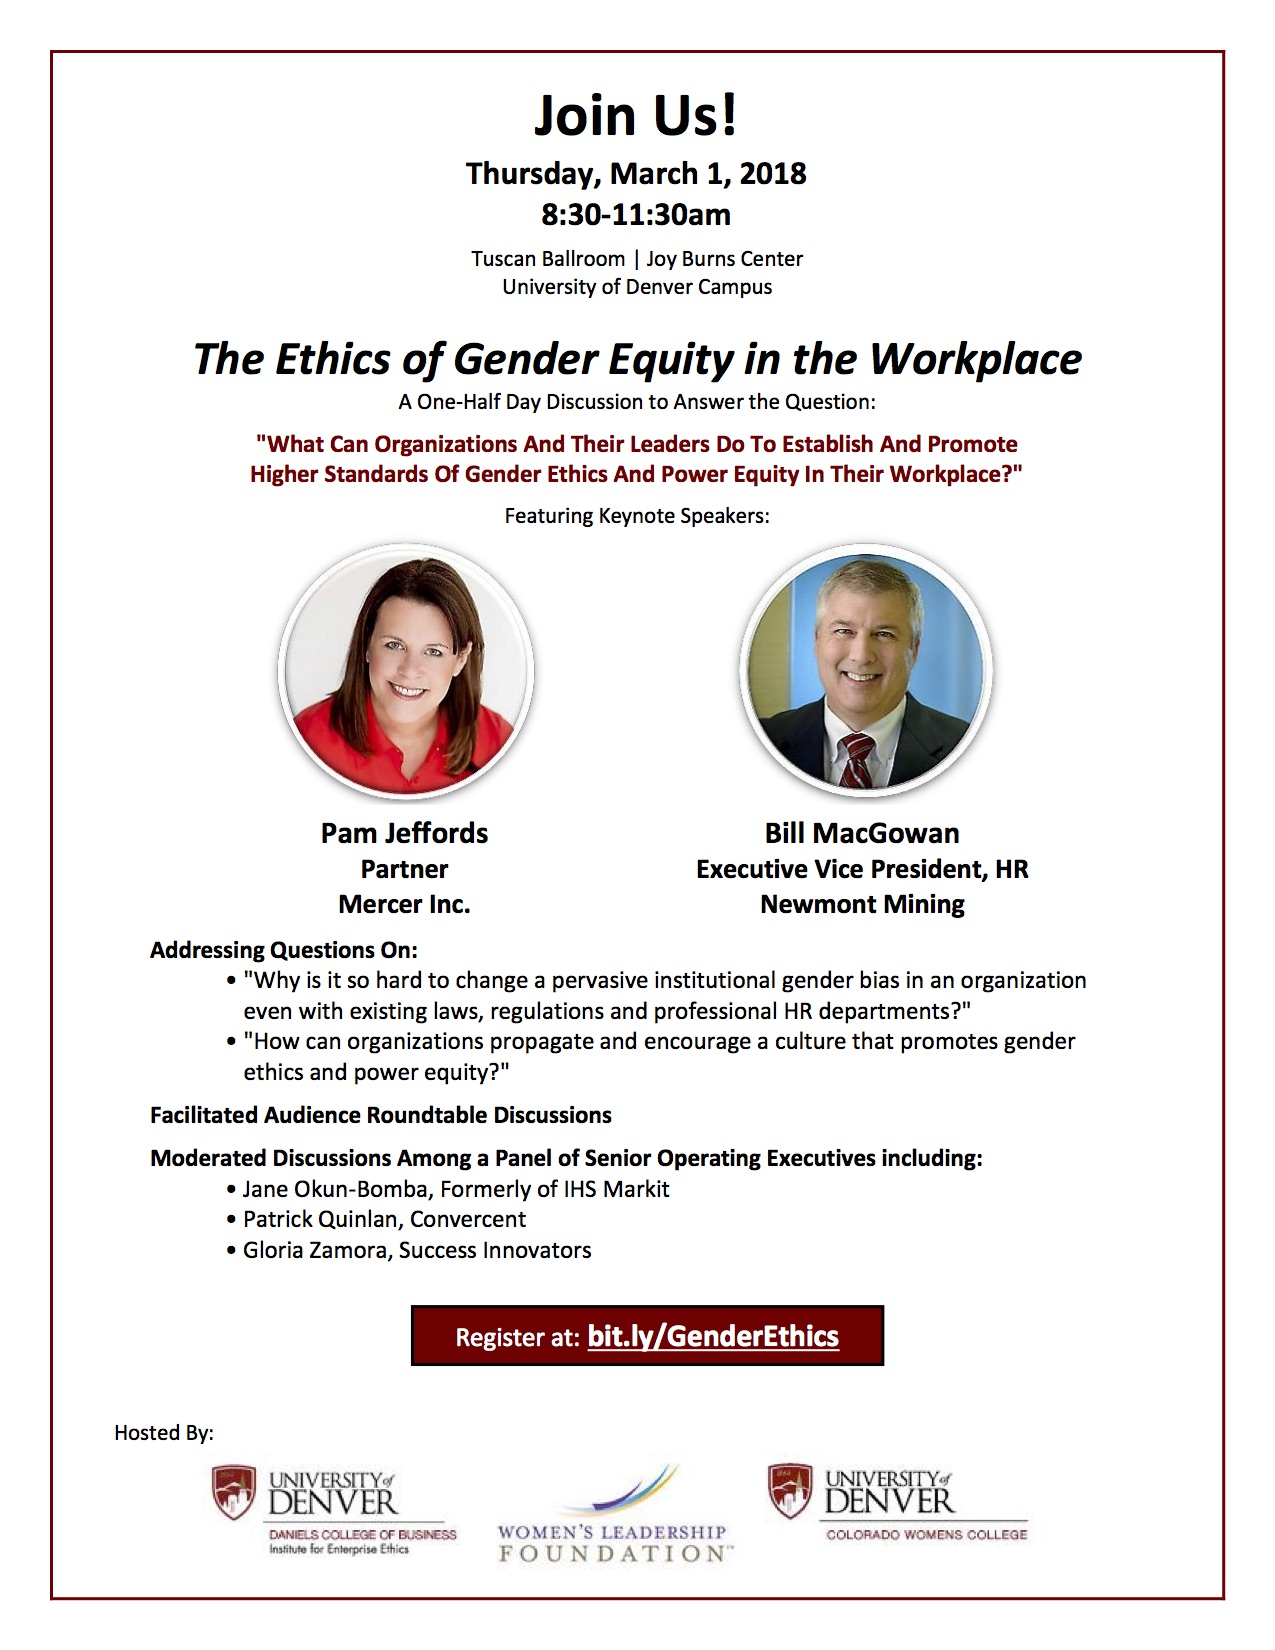 The Ethics of Gender Equity in the Workplace | Colorado